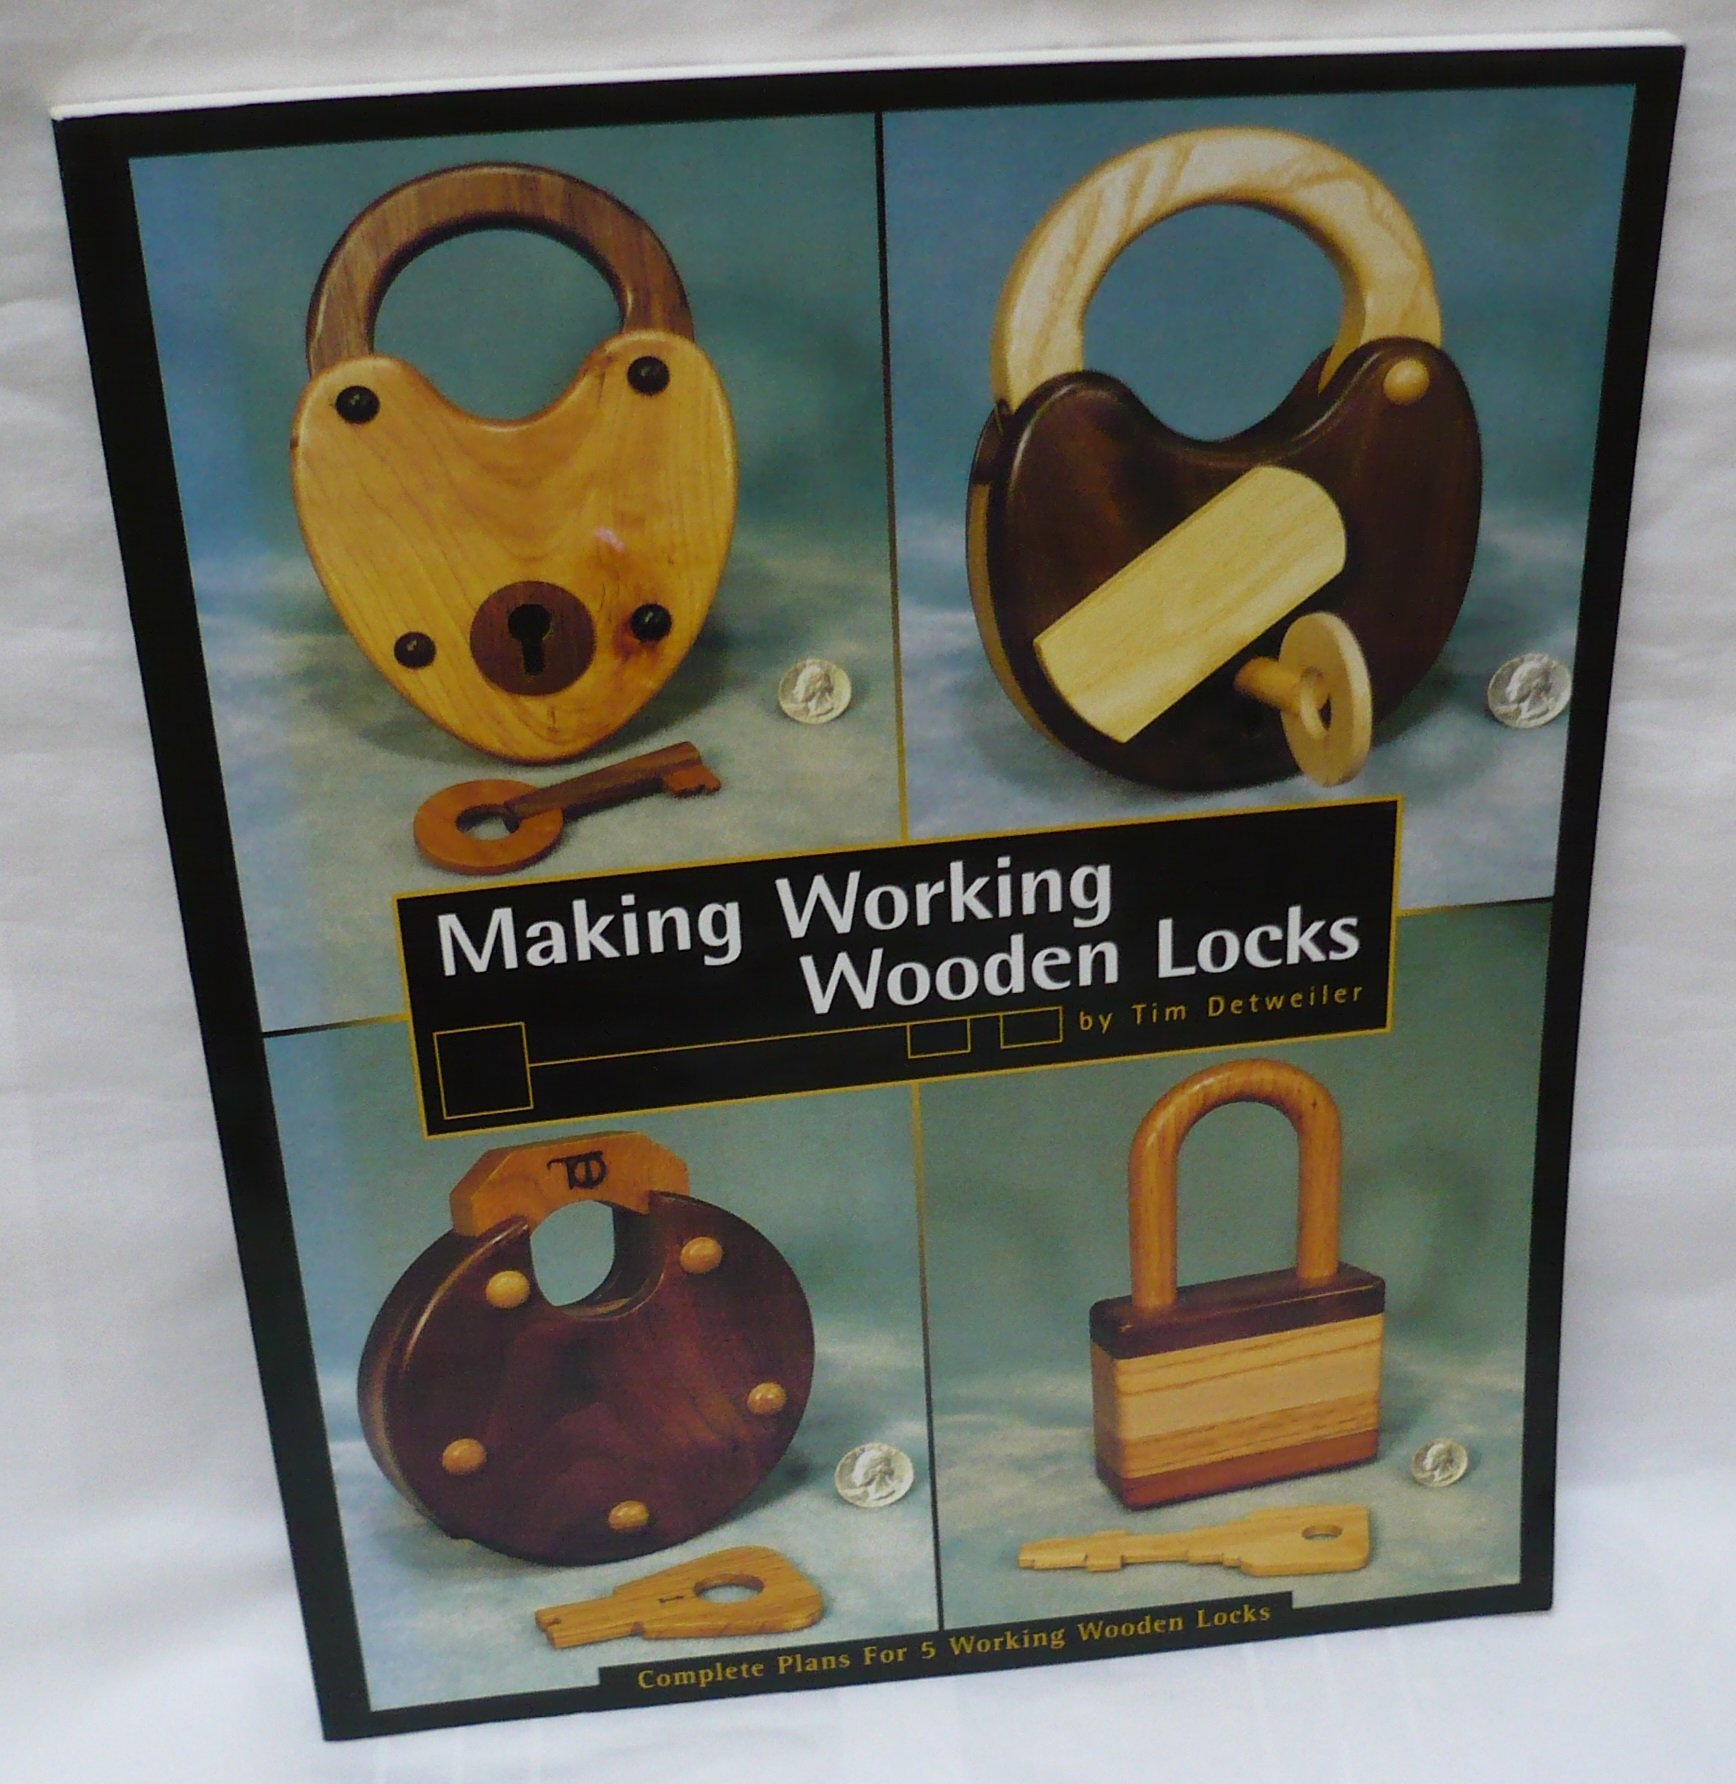 Making Working Wooden Locks (Woodworker's Library)